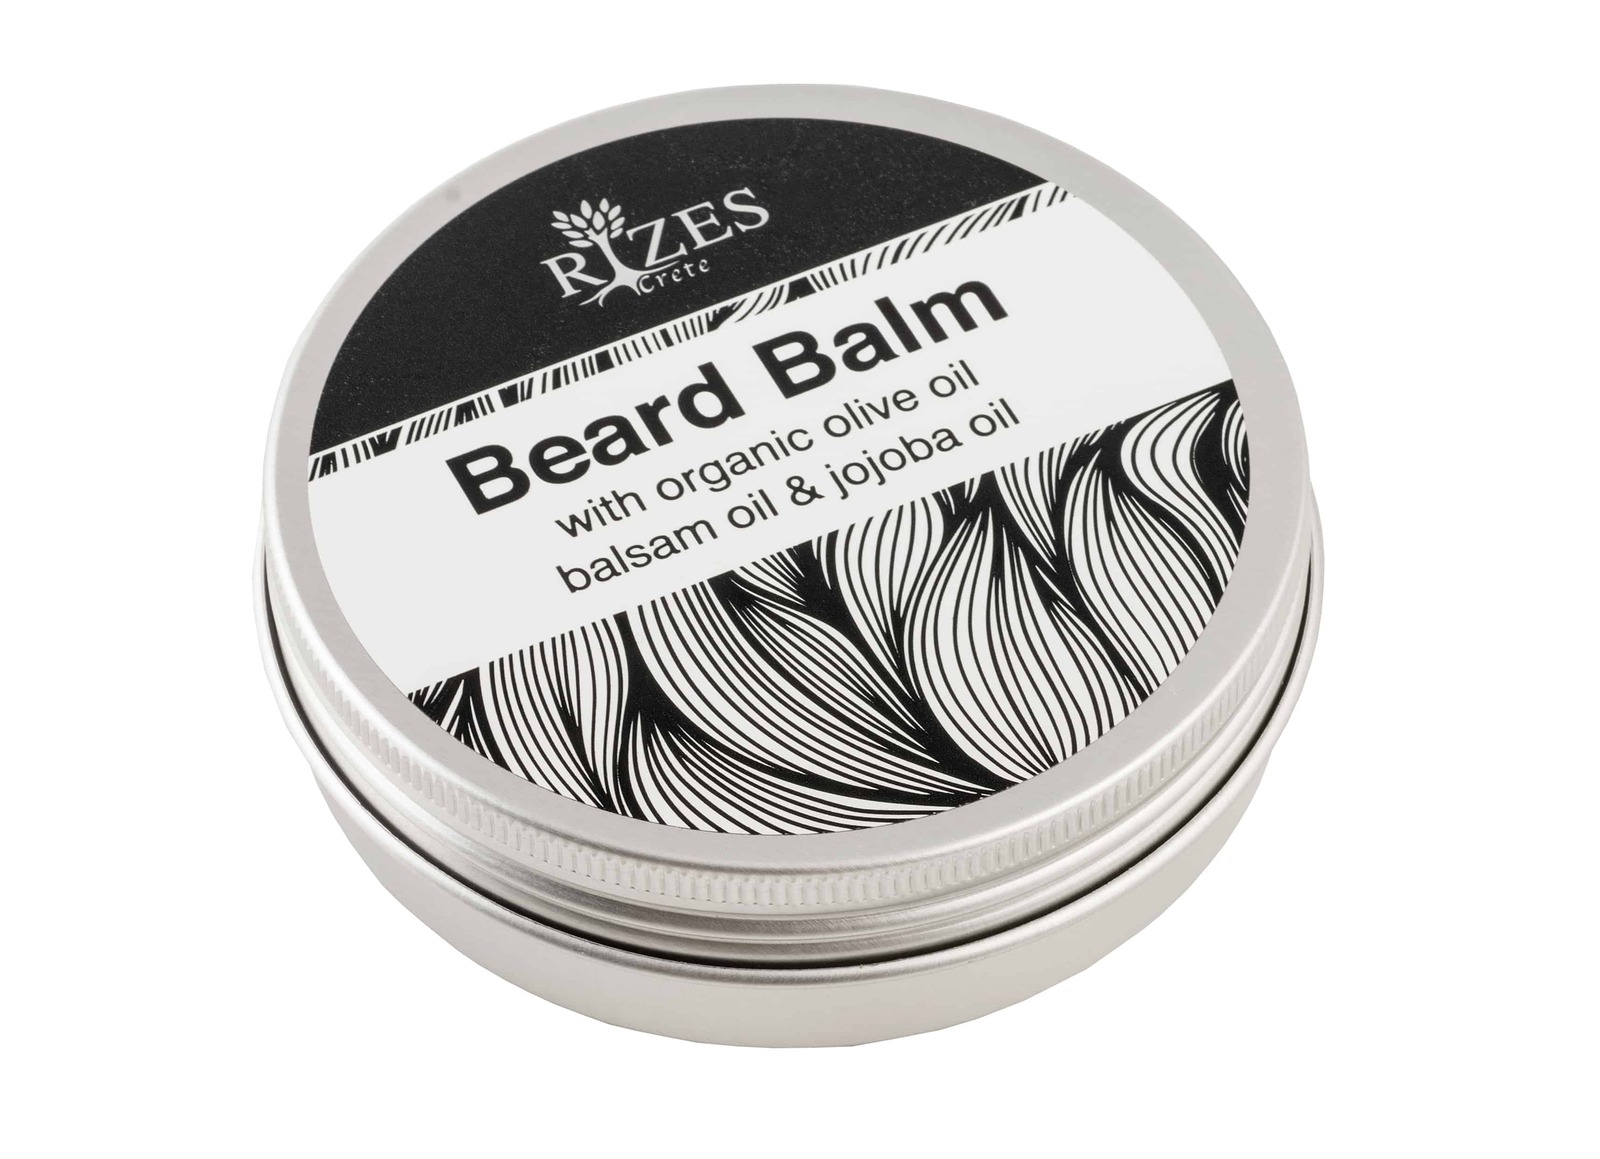 Beard balm with organic olive oil balsam oil and jojoba oil